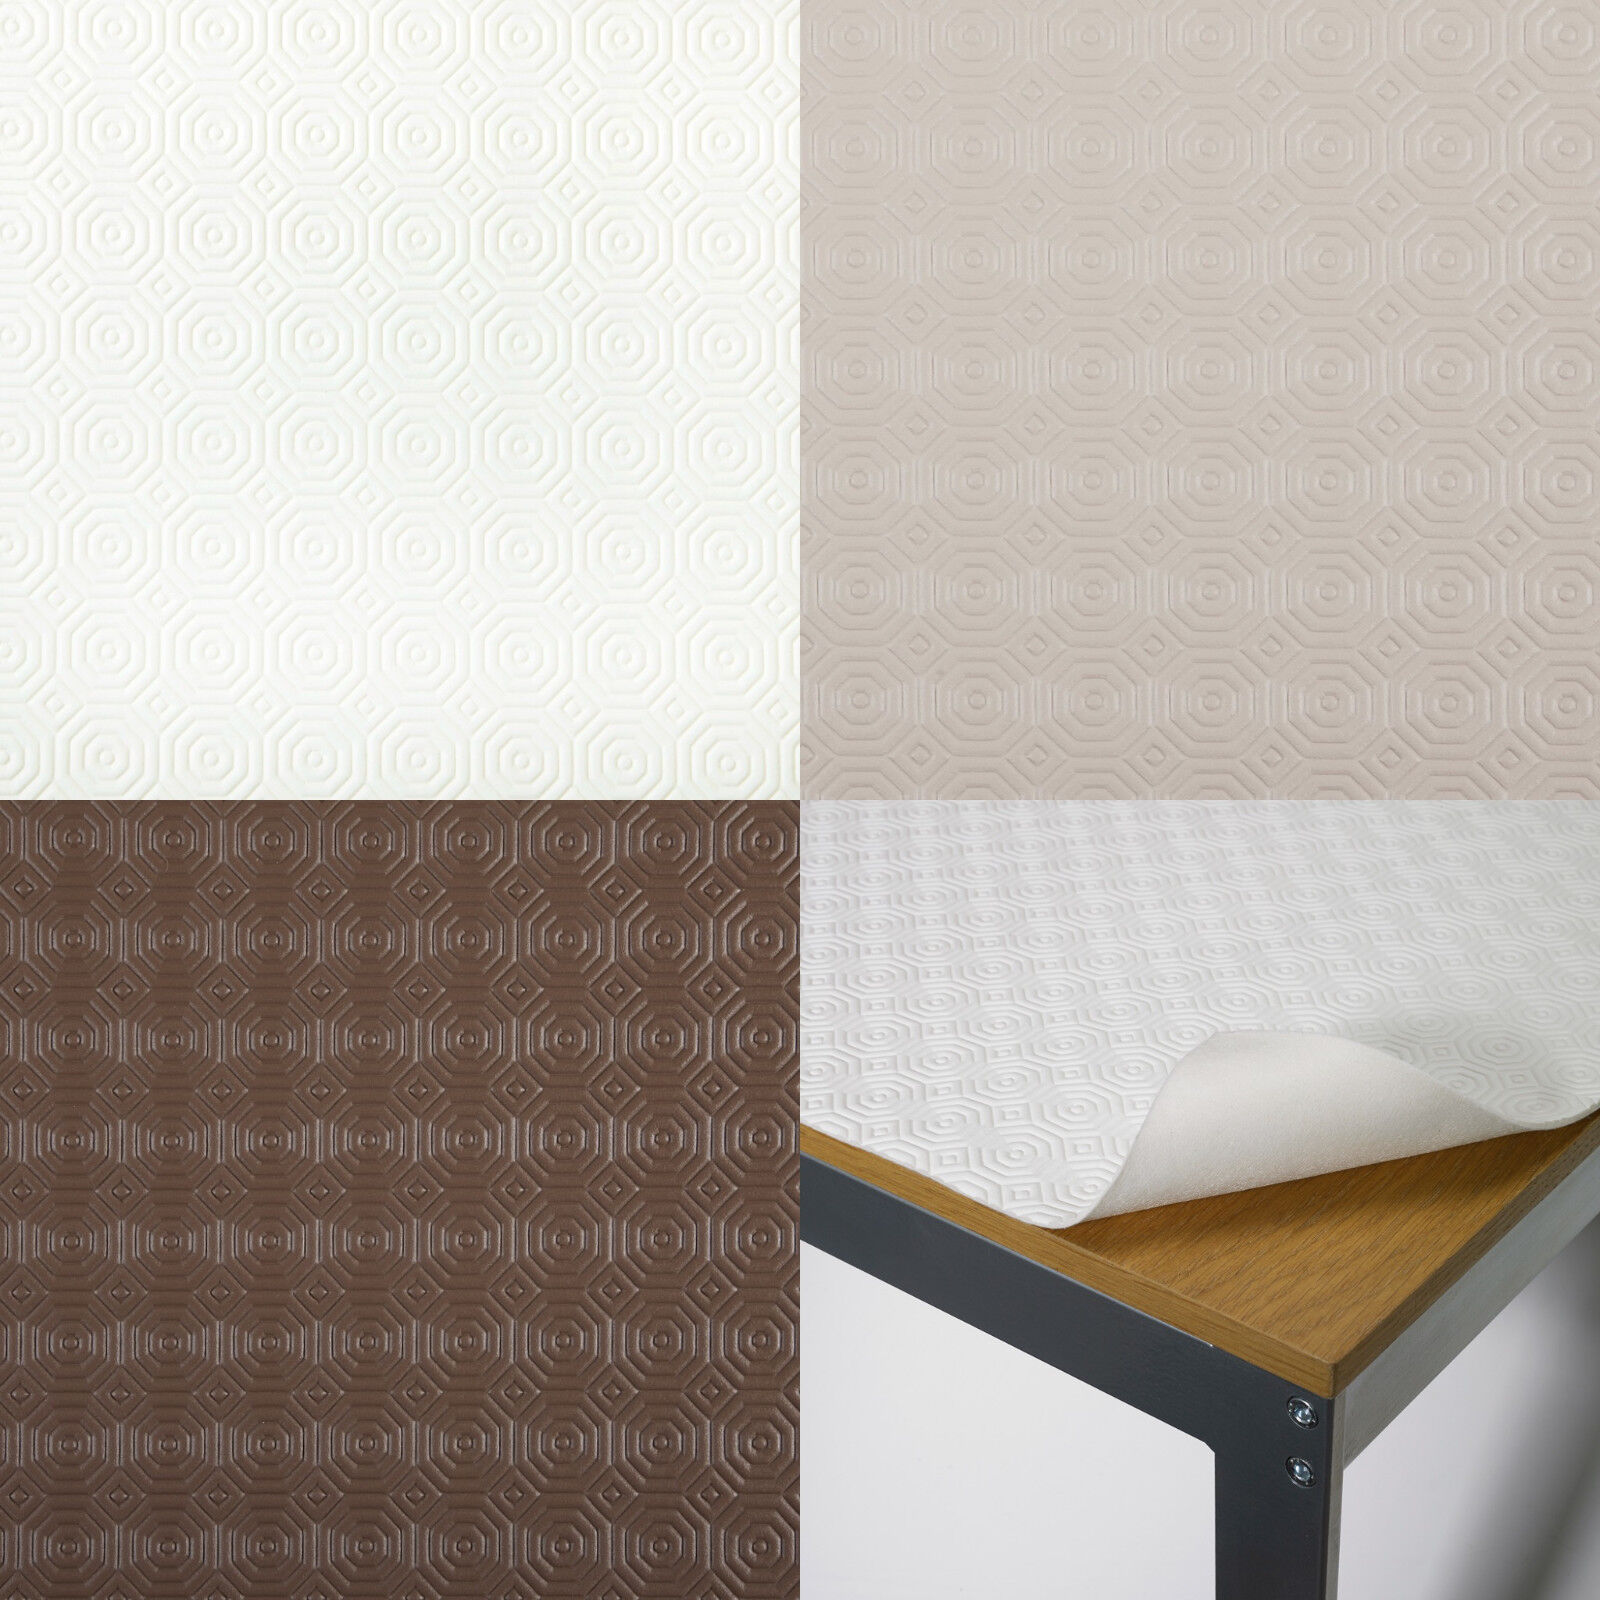 Details about Heat Resistant Table Cover Protector / Felt Backed 3mm Thick  - Beige Cream Brown